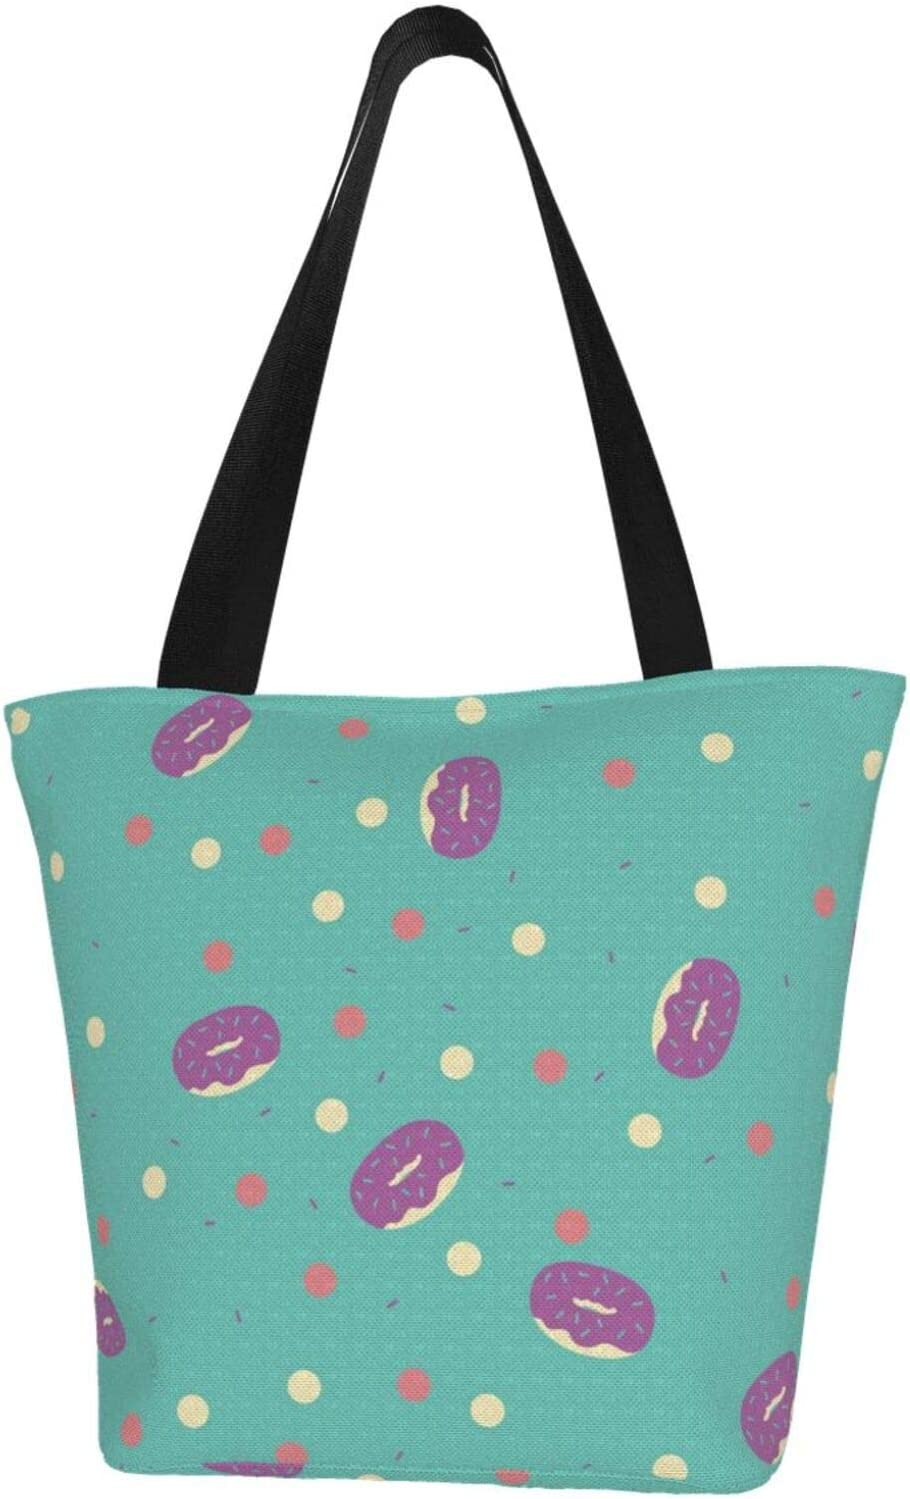 AKLID Donut Courier shipping free shipping Dot Extra New Shipping Free Large Water Canvas for Tote Bag Resistant